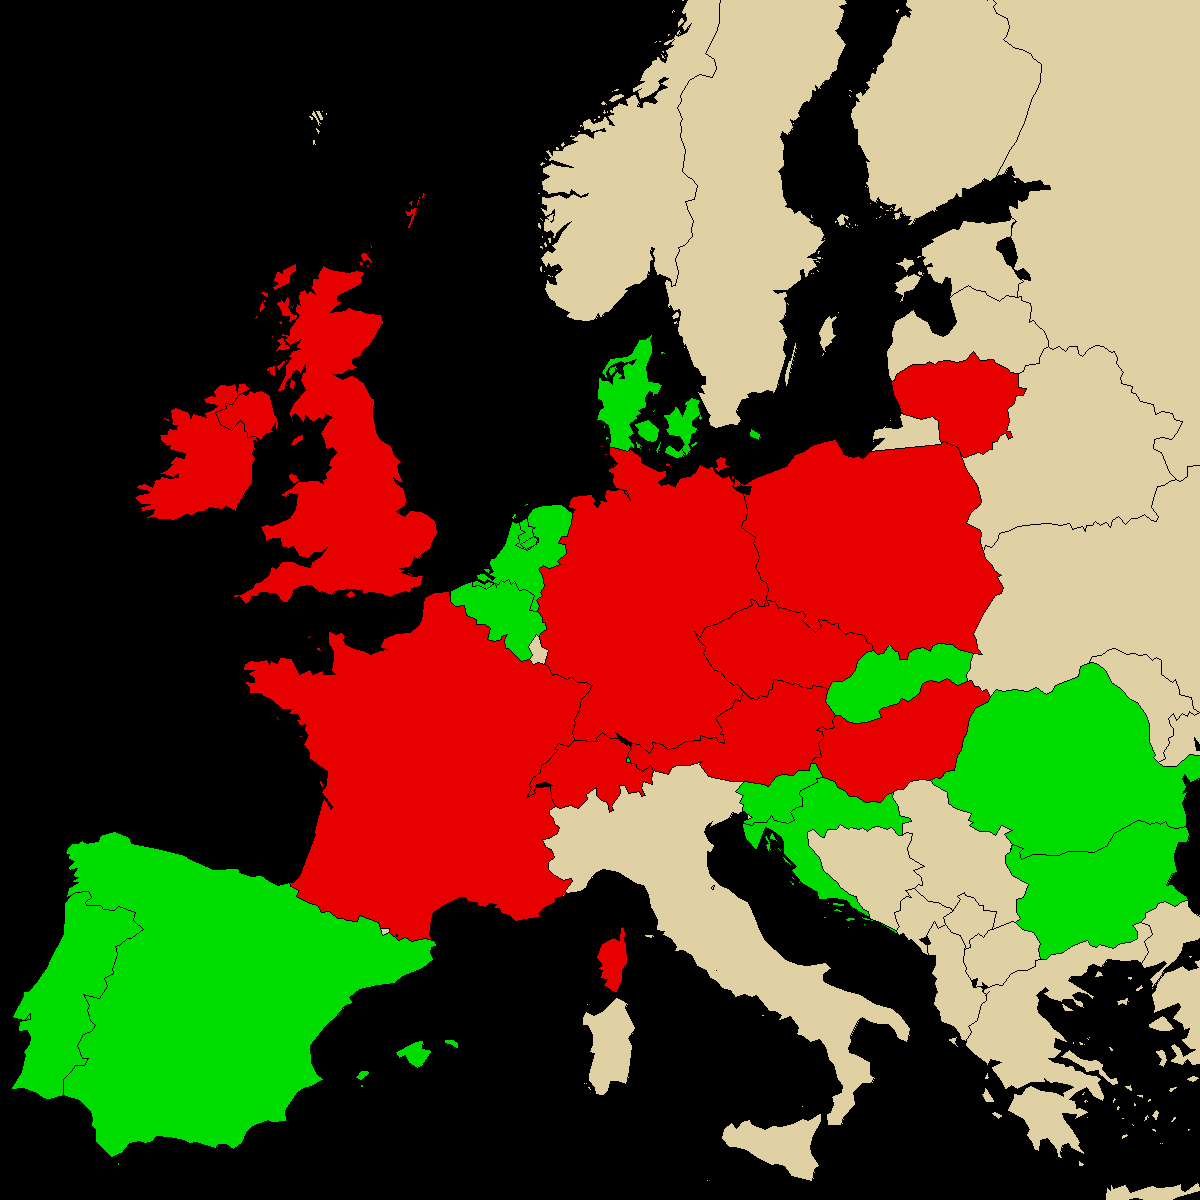 legal info map for our product a-PiHP, green are countries with no ban, red with ban, grey is unknown